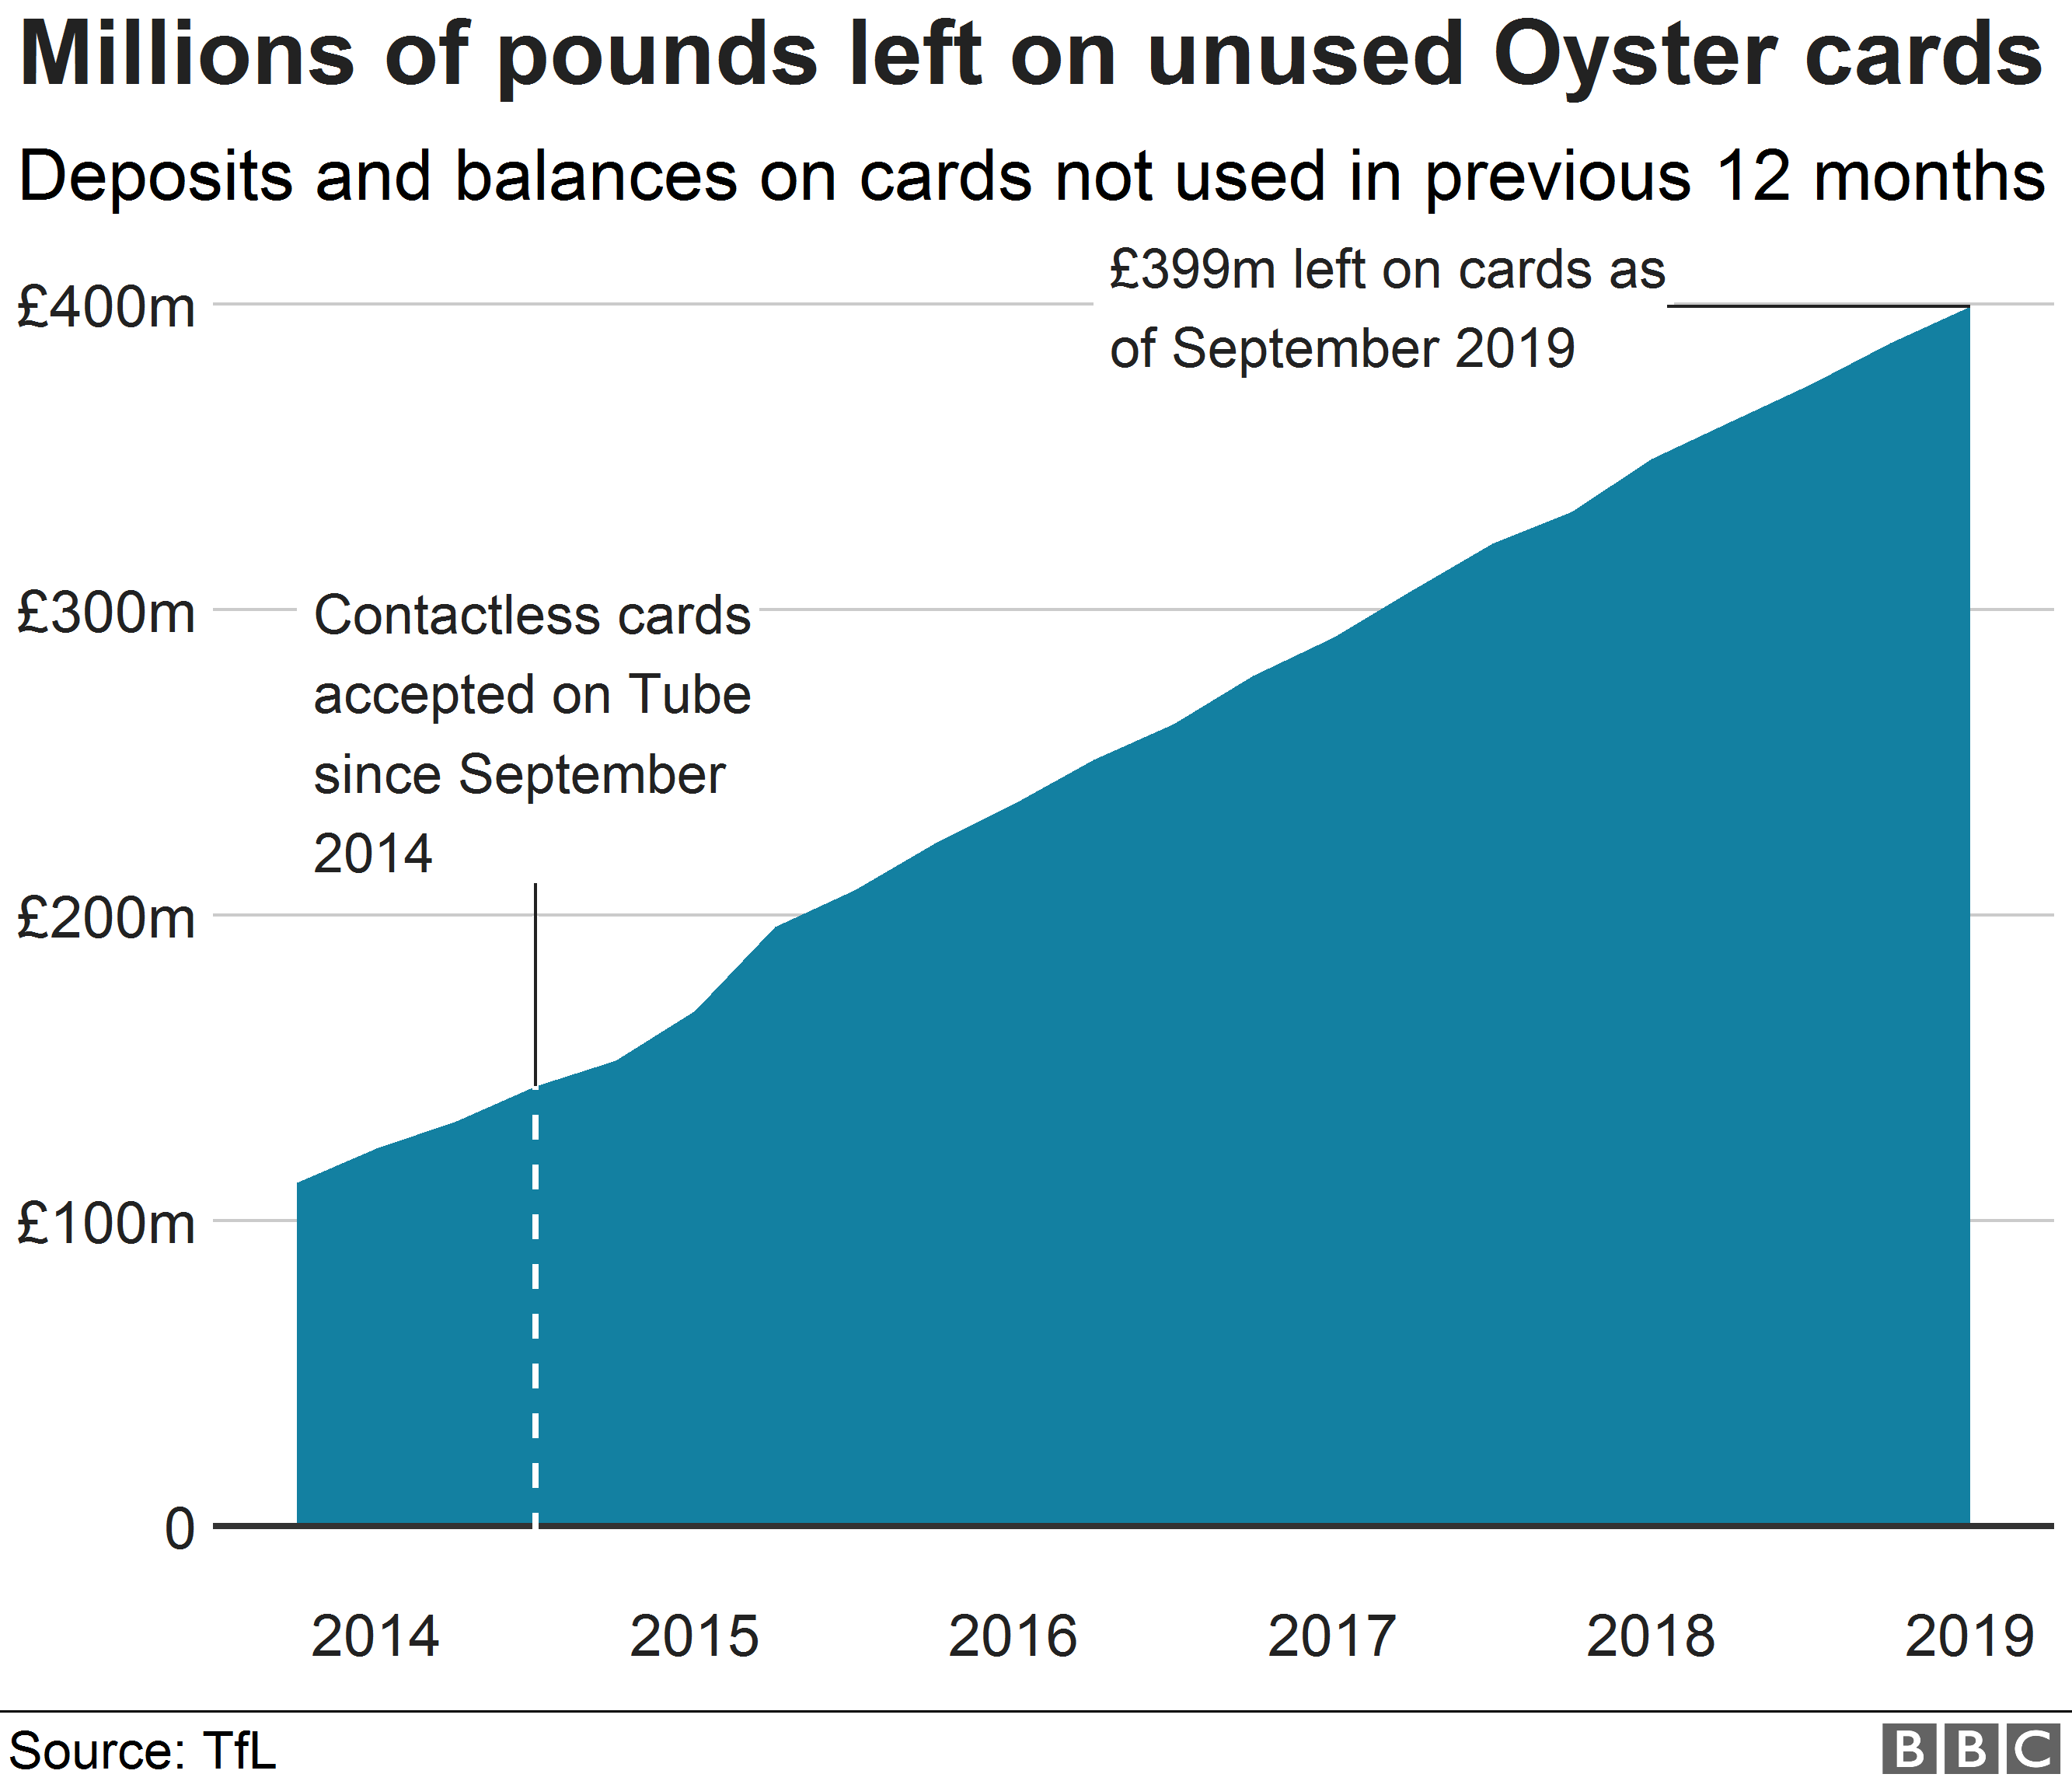 Chart showing amounts left on unused Oyster cards